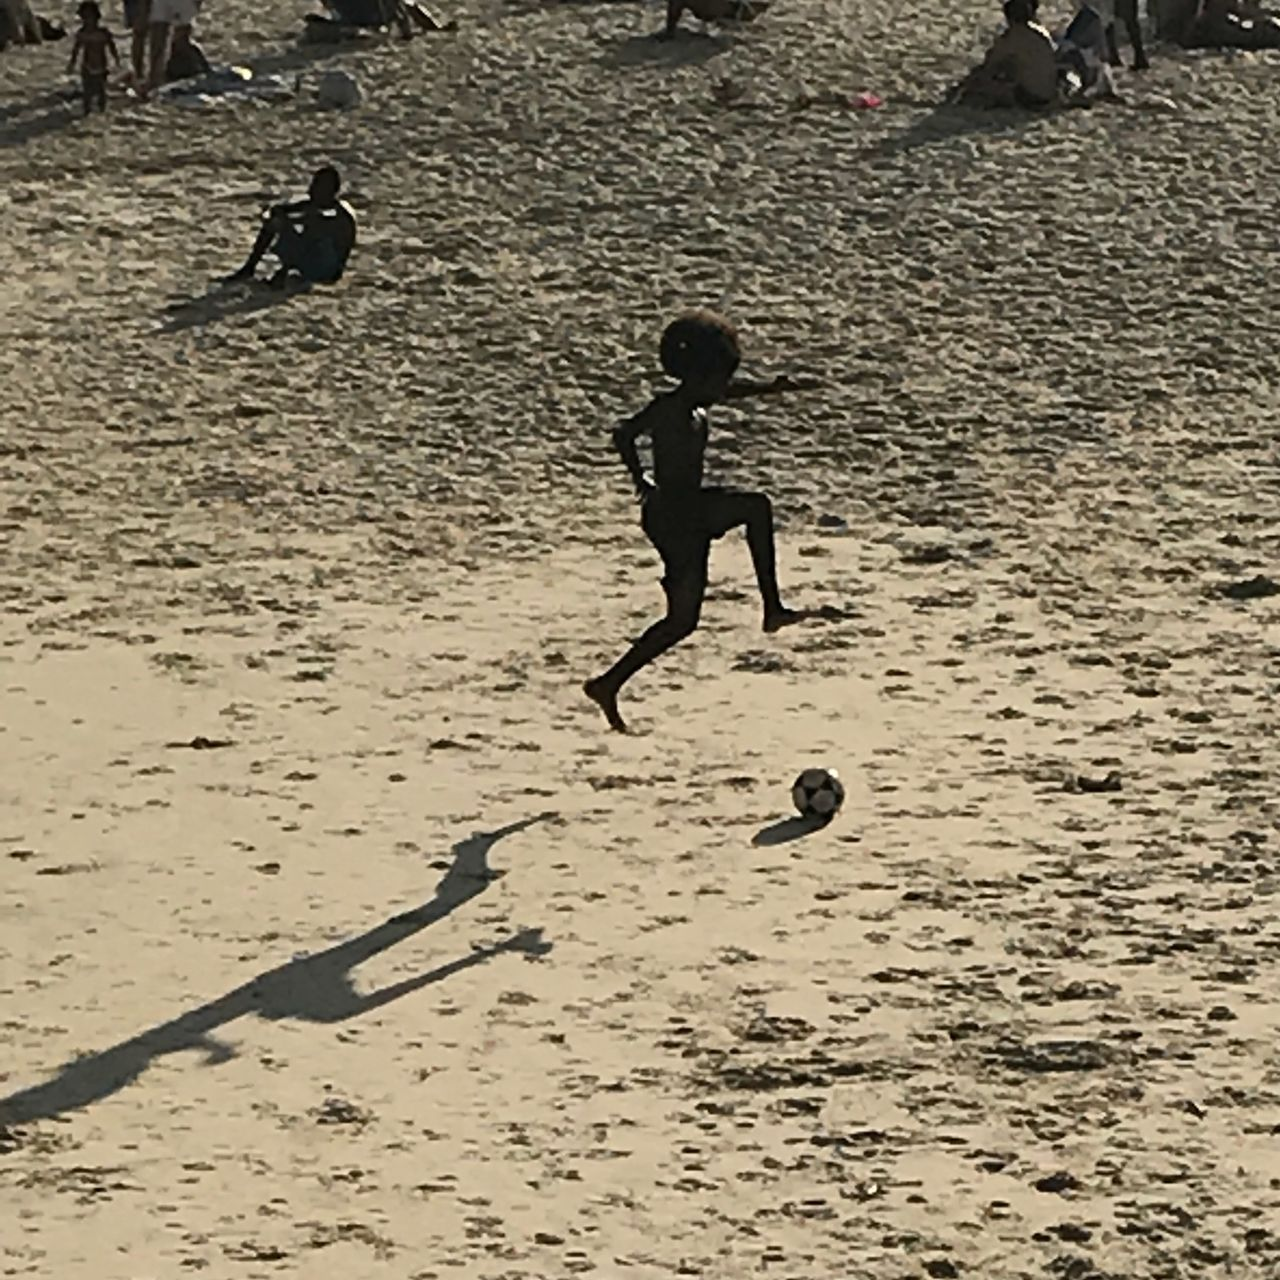 real people, child, men, full length, childhood, males, playing, one person, boys, leisure activity, lifestyles, shadow, ball, land, soccer ball, sand, soccer, nature, running, outdoors